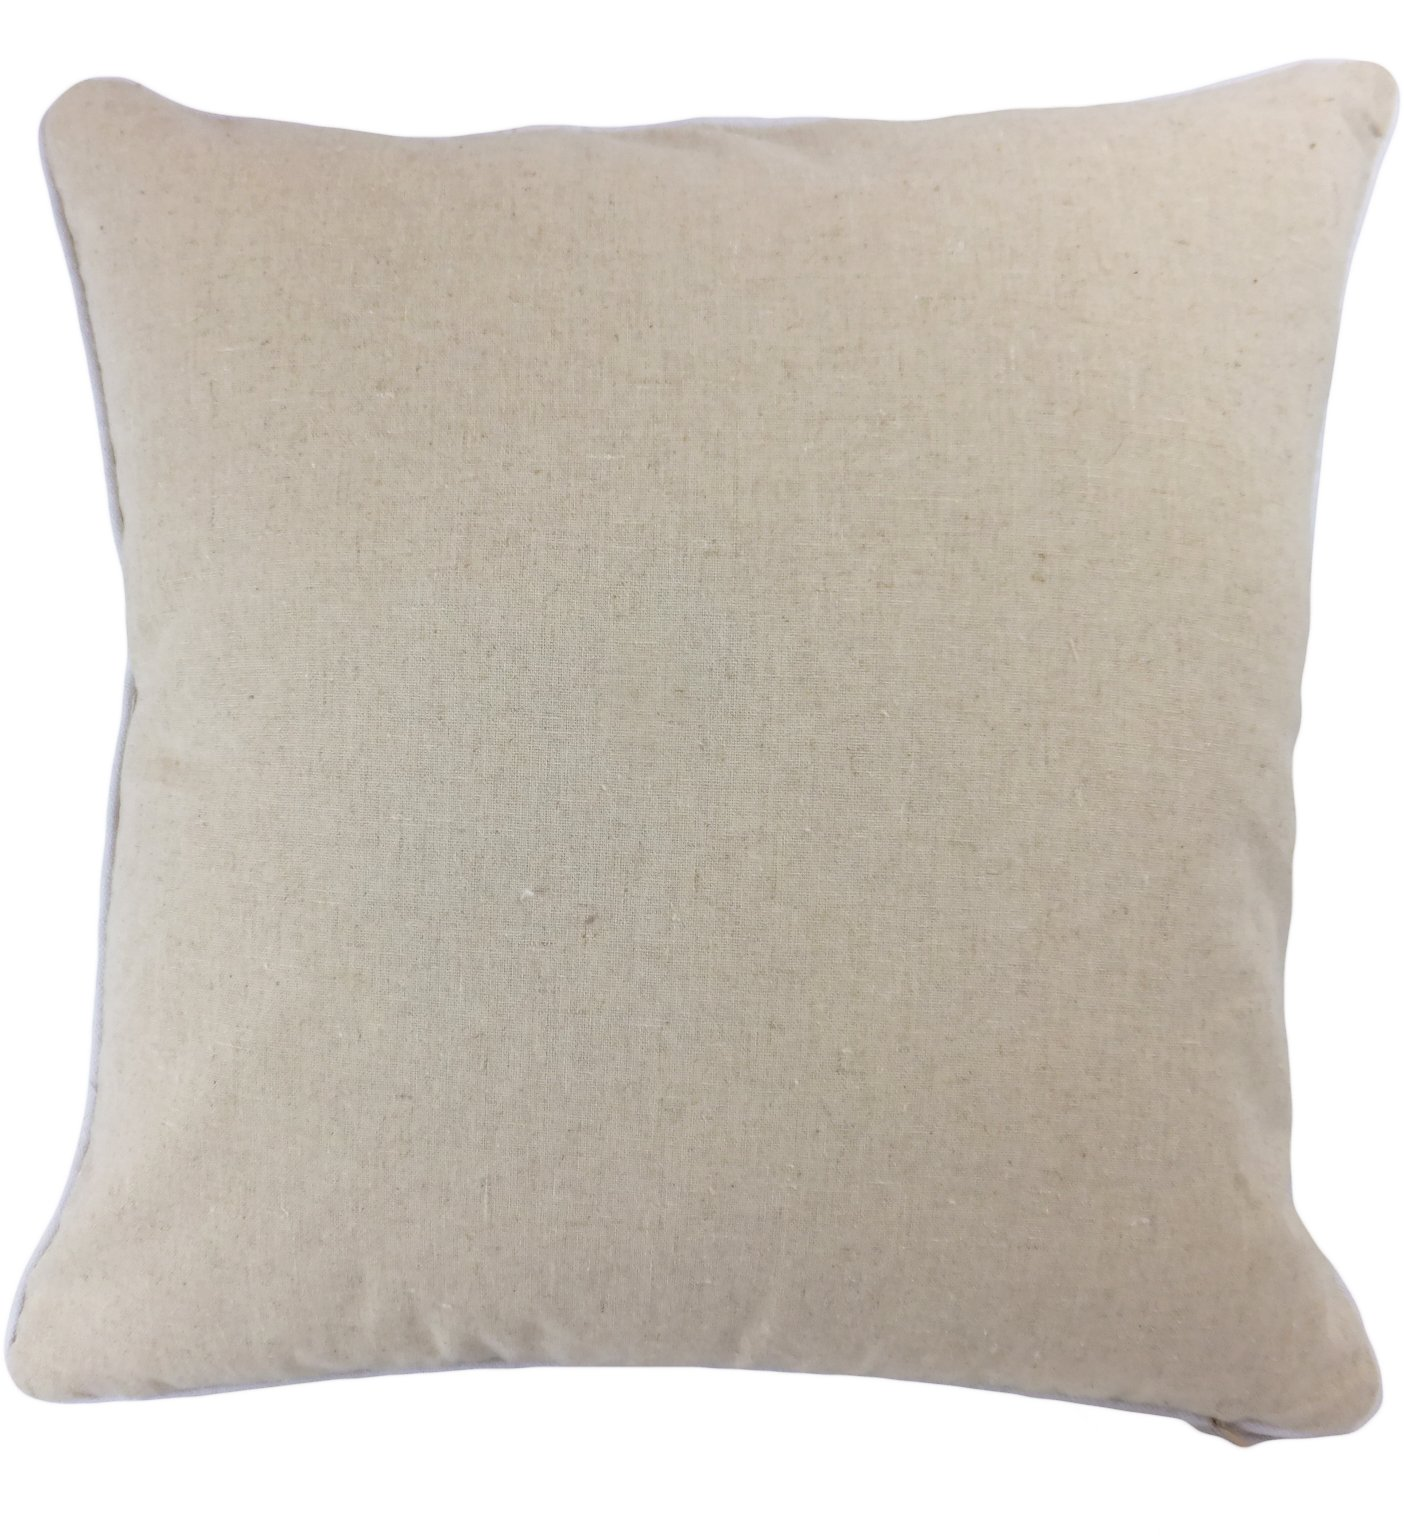 """Blue Dolphin Decorative White Sequins Love Symbol Floral Throw Pillow Cover 18"""" White/Beige - Sewn LOVE symbol white sequins in front Simple, elegant design makes the pillow a perfect match in any room Hidden zipper allows easy change of pillow inserts - living-room-soft-furnishings, living-room, decorative-pillows - 71W5FsMU7UL -"""